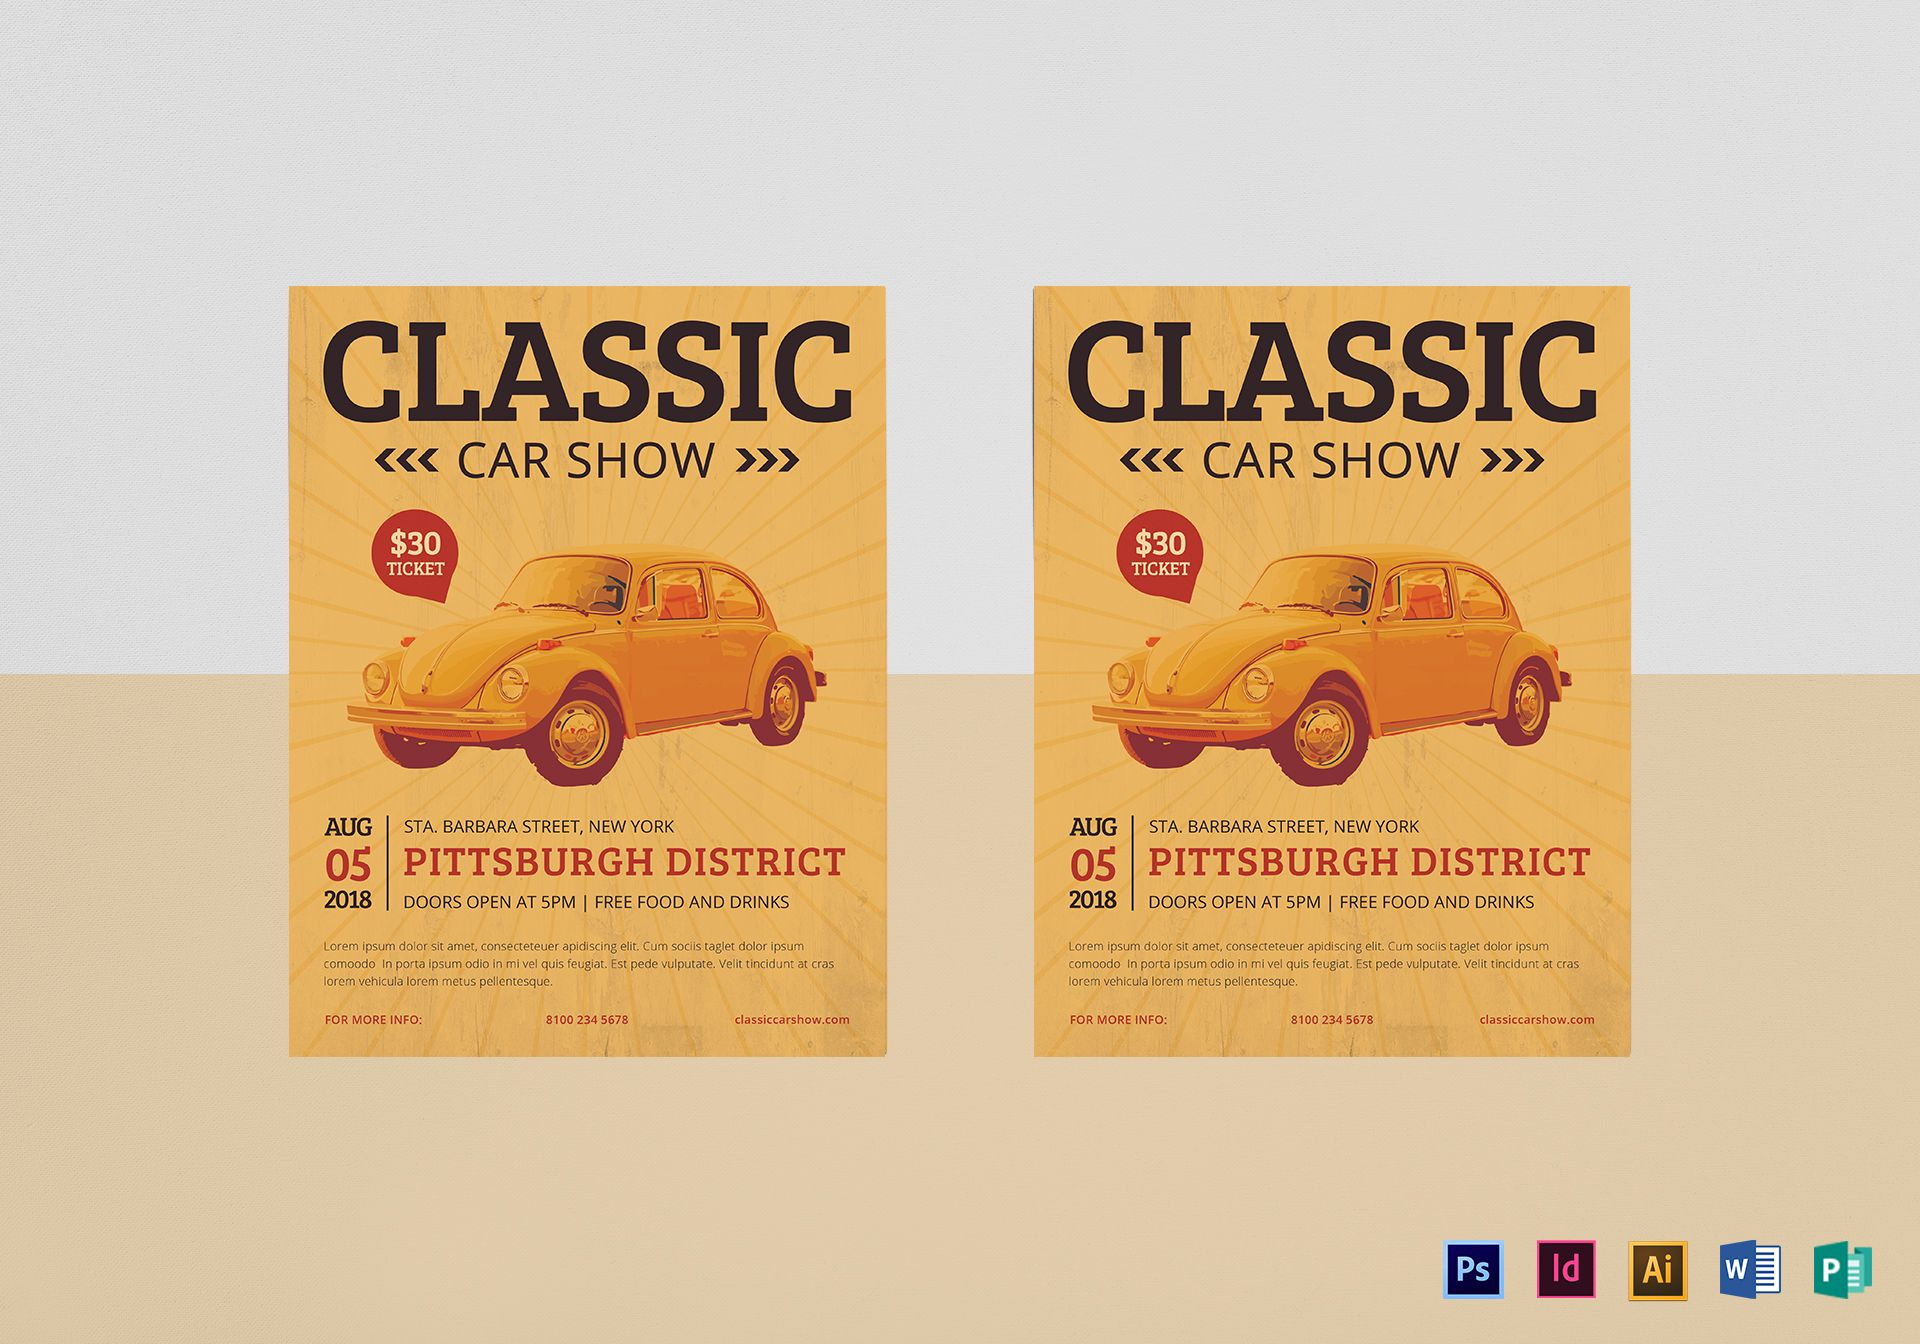 Classic Car Show Flyer Design Template In PSD Word Publisher - Classic car show poster template